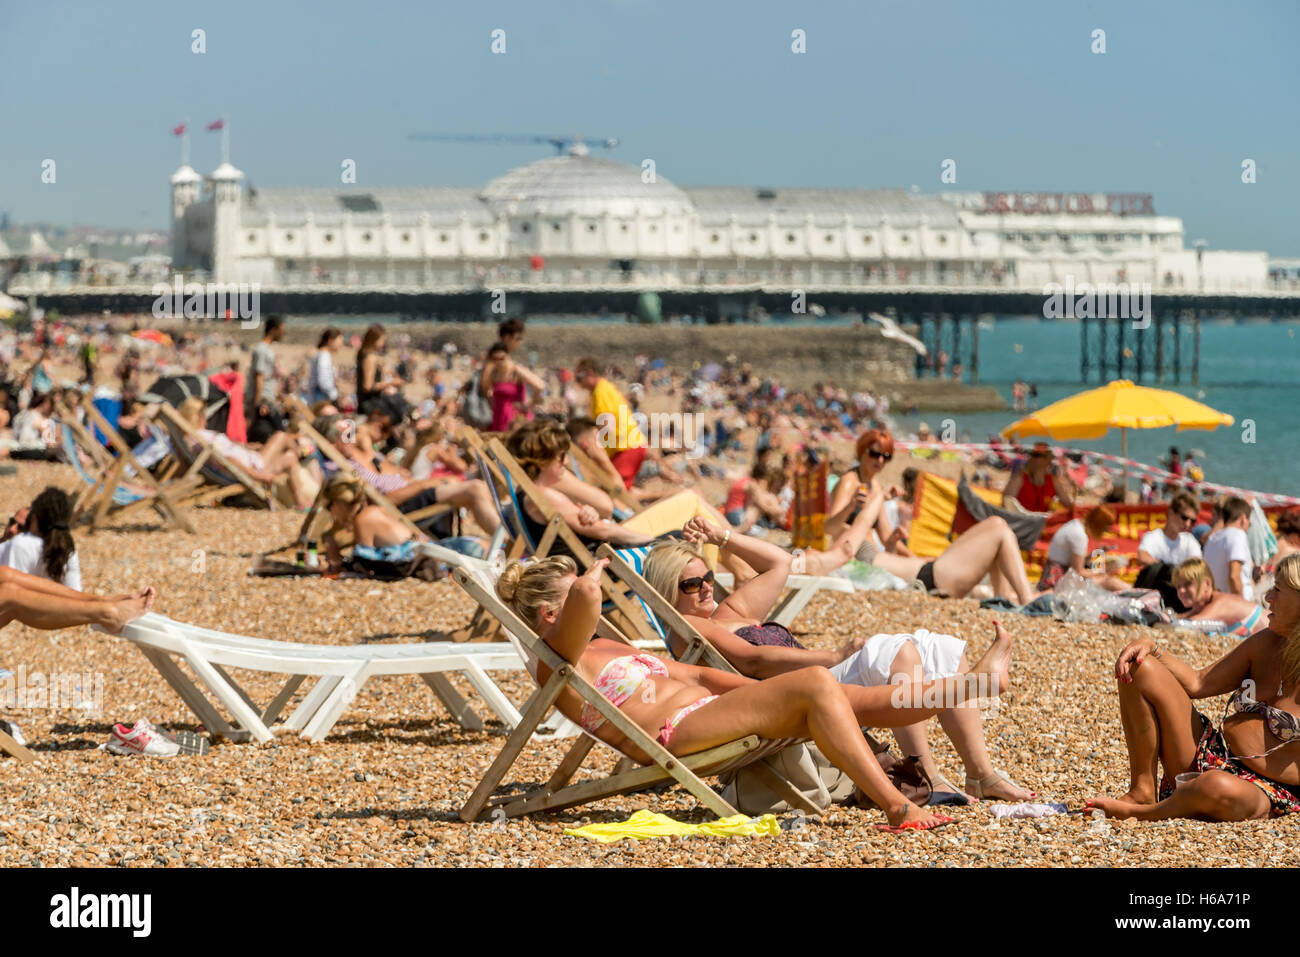 A sunny July day on Brighton beach - Stock Image